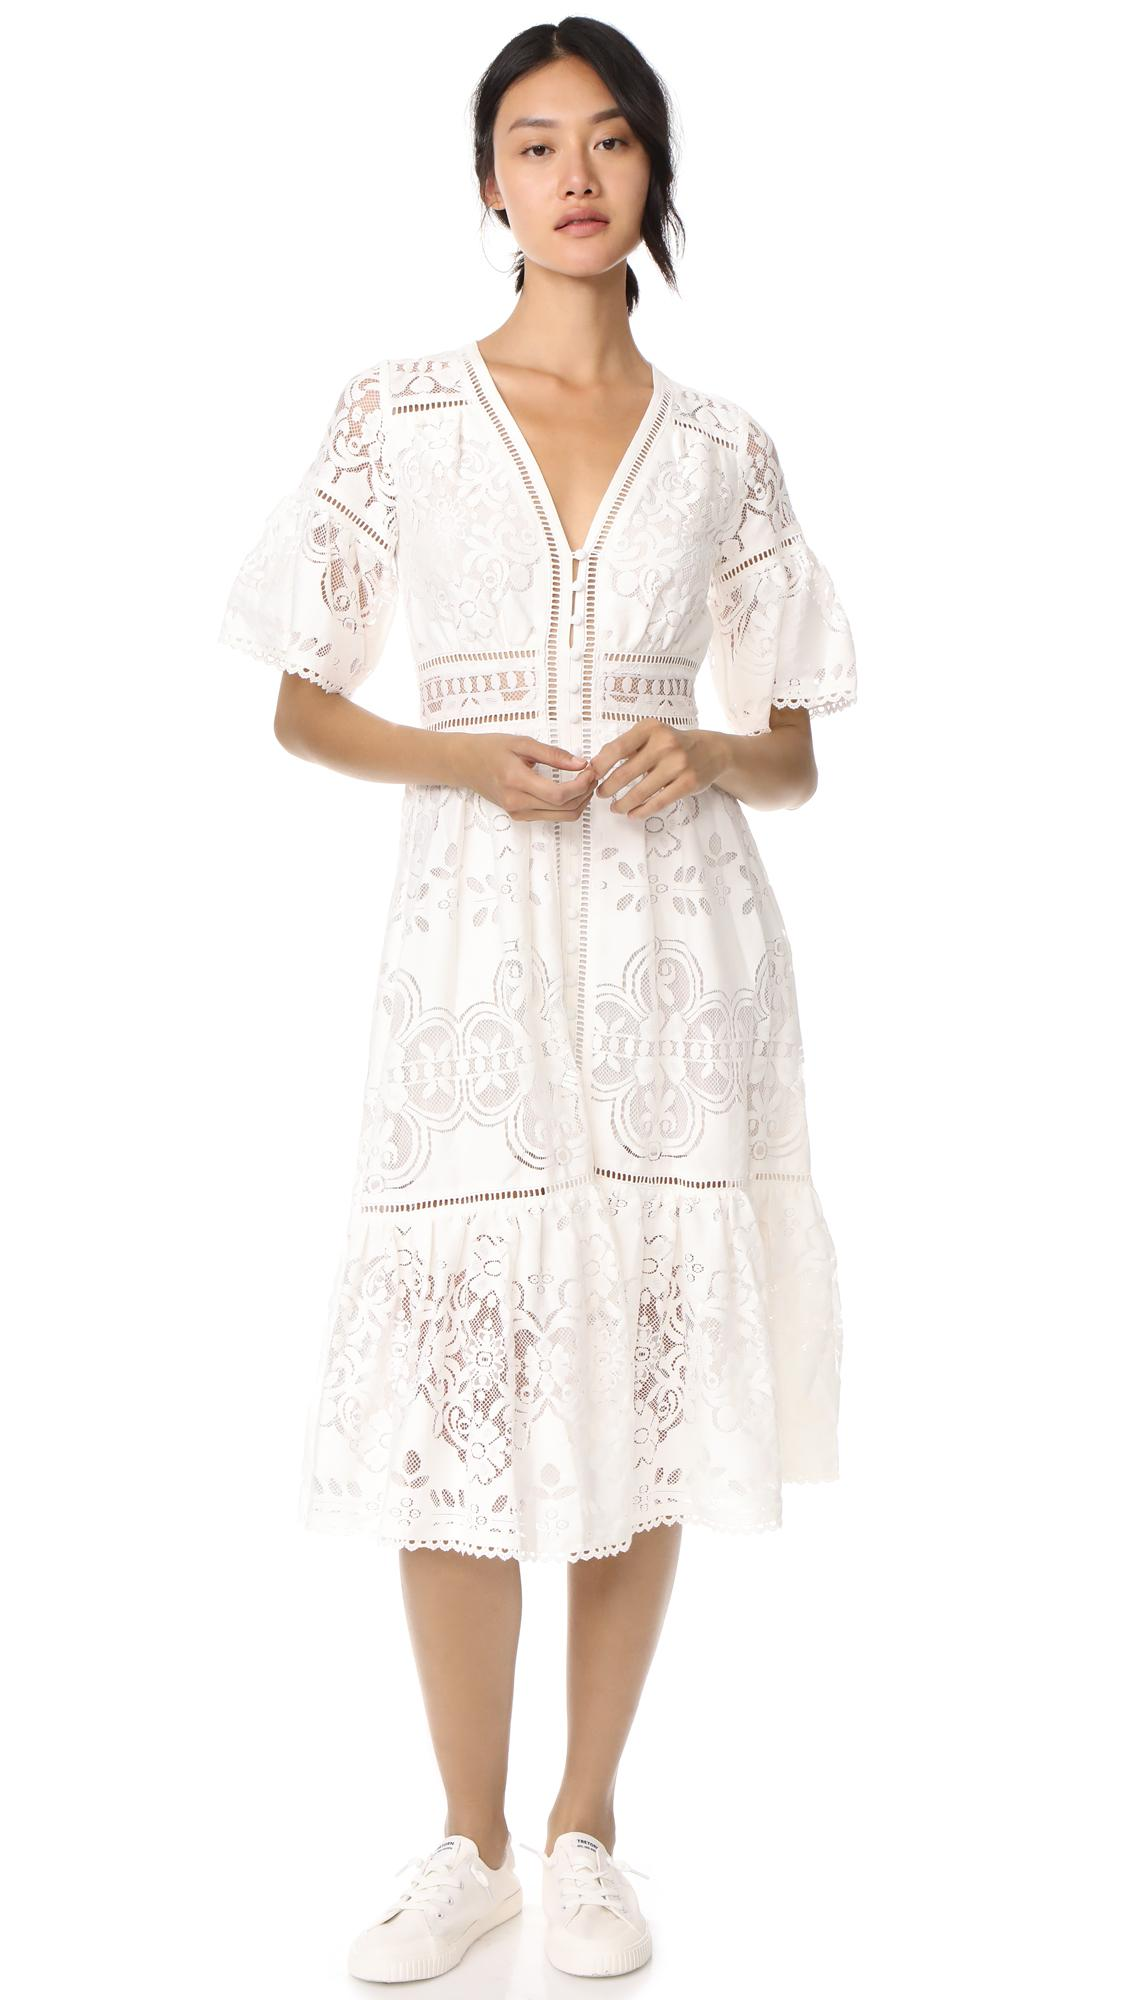 Lyst - Spell Clover Lace Gown in White